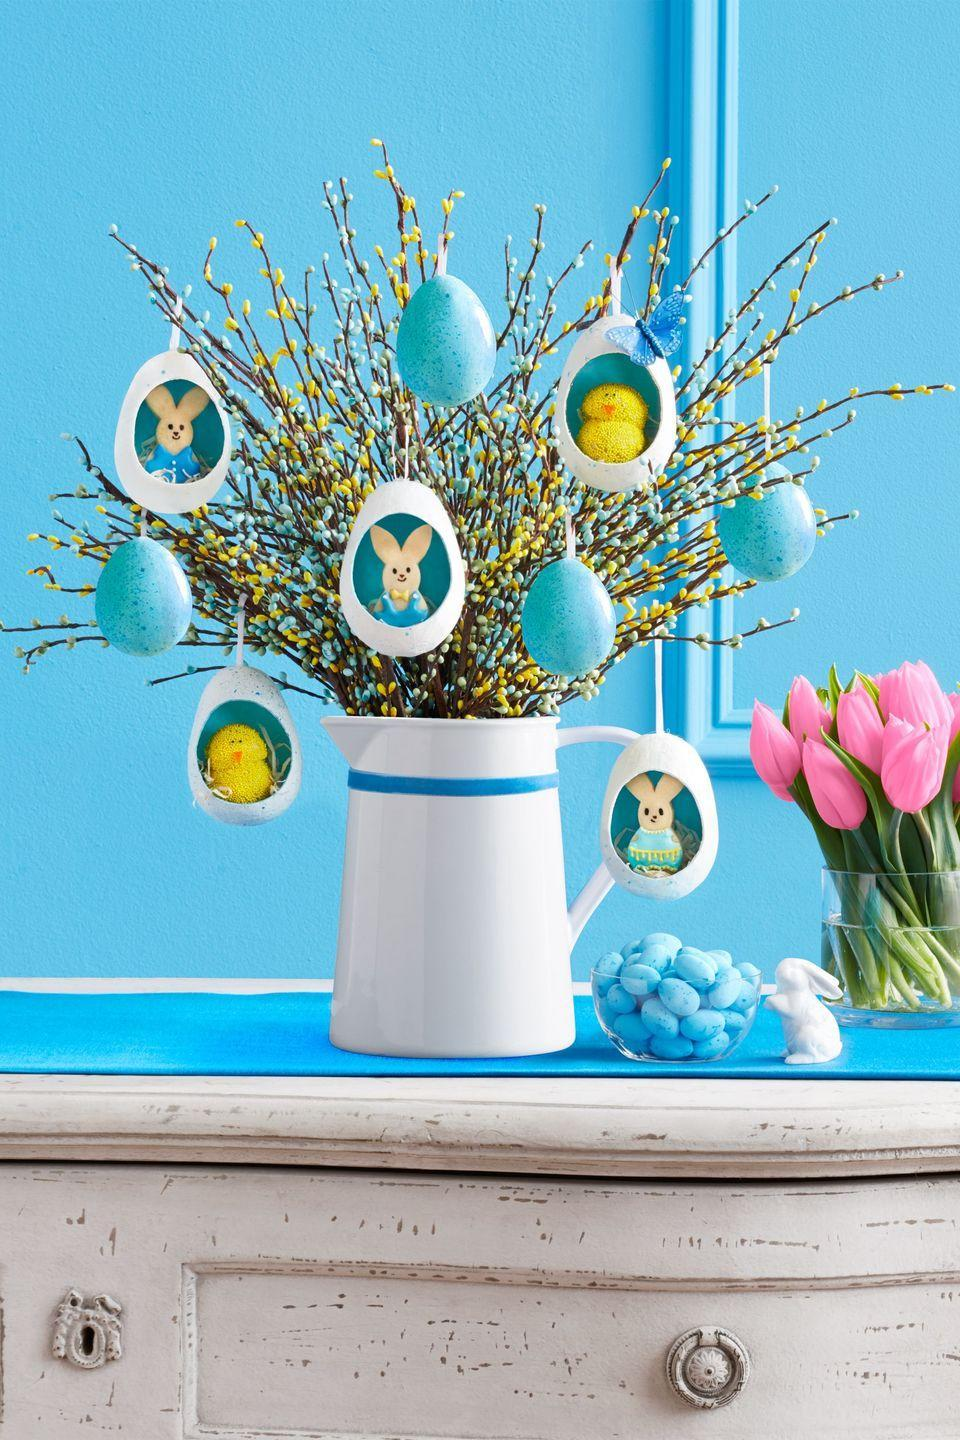 """<p>Use a craft knife to cut a 2"""" x 2"""" oval into 4"""" eggs. Apply one to two coats of paint to the 4"""" and 2"""" eggs; let dry. Stuff 4"""" eggs with tissue paper, then place all eggs inside cardboard box. In small bowl, mix a few drops of water with a dollop of paint, then dip the toothbrush bristles in and use your thumb to fleck the paint onto the eggs to create speckles. Once dry, repeat for the reverse side of the eggs. Place floral foam inside the flower bucket and arrange sprays inside. Use brown floral tape to attach two sprays together to create height as needed. Hot-glue a small loop of ribbon to the top of the eggs and hang from spray branches. Arrange Easter grass inside 4"""" eggs, then add cookies.</p><p><strong><a class=""""link rapid-noclick-resp"""" href=""""https://www.amazon.com/X-Acto-XZ3601-X-ACTO-Knife-Safety/dp/B005KRSWM6/?tag=syn-yahoo-20&ascsubtag=%5Bartid%7C10070.g.1751%5Bsrc%7Cyahoo-us"""" rel=""""nofollow noopener"""" target=""""_blank"""" data-ylk=""""slk:SHOP CRAFT KNIVES"""">SHOP CRAFT KNIVES</a></strong></p>"""